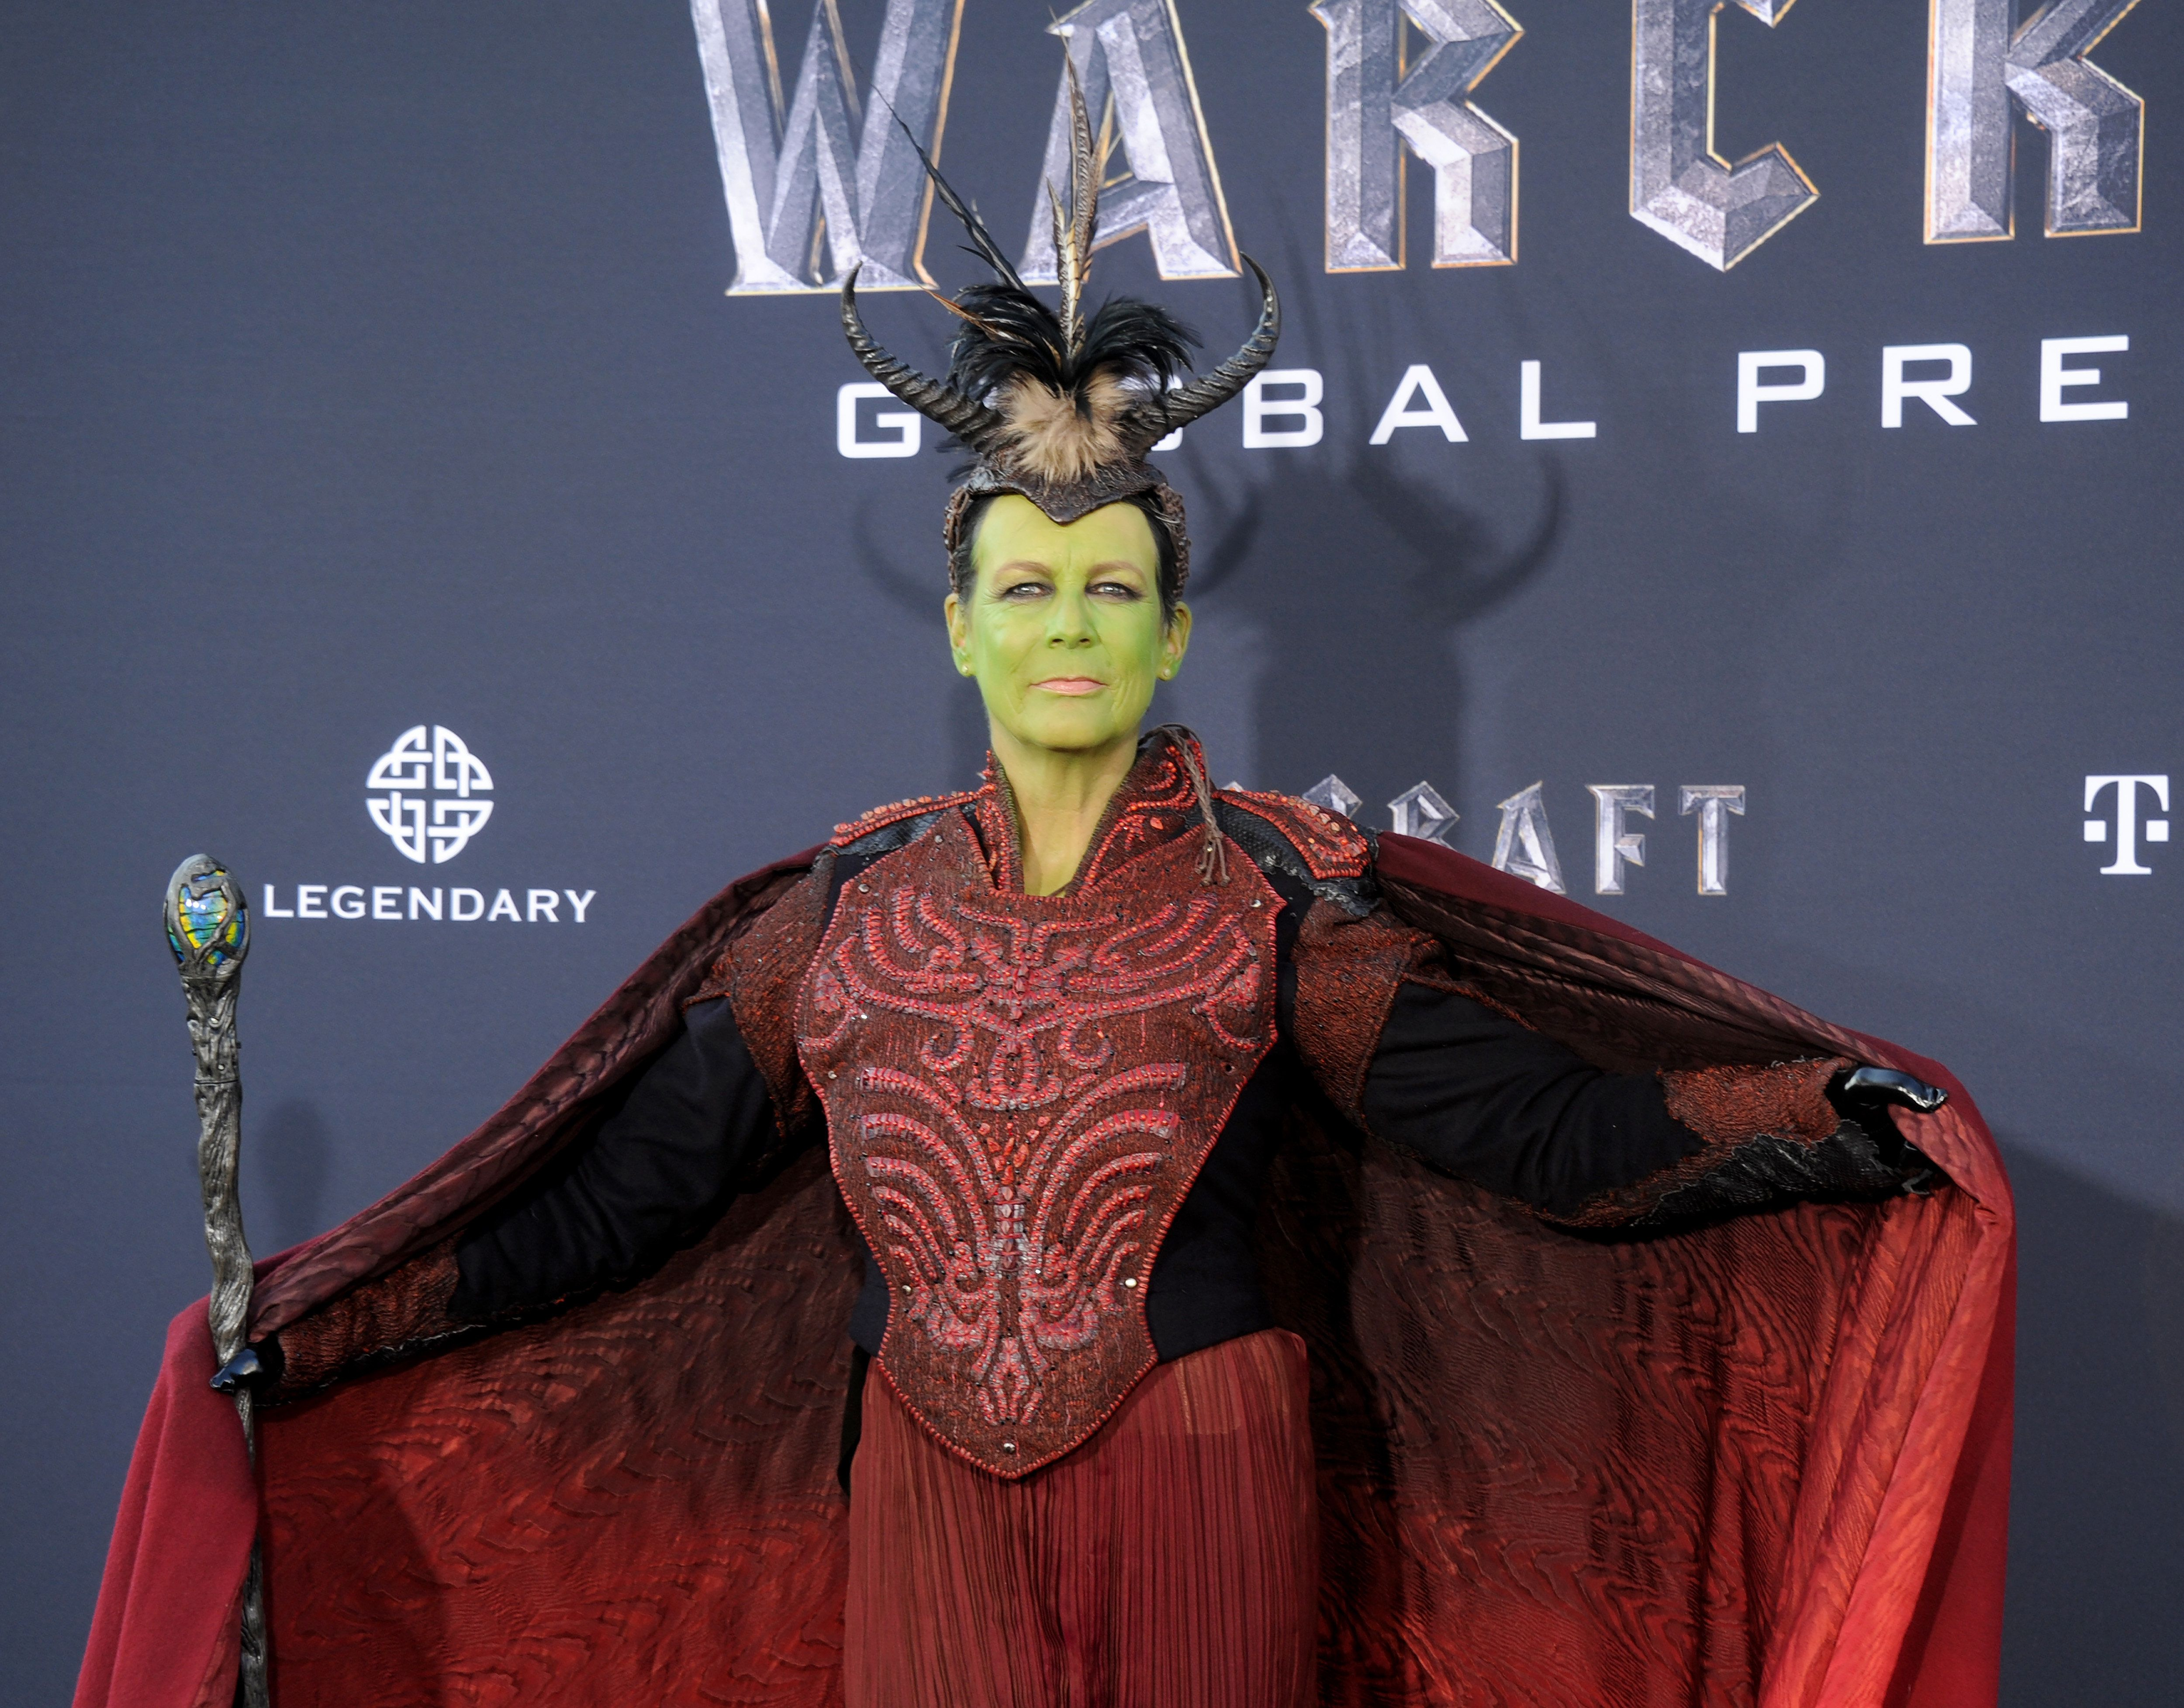 HOLLYWOOD, CA - JUNE 06:  Actress Jamie Lee Curtis arrives at the premiere of Universal Pictures' 'Warcraft' at TCL Chinese Theatre IMAX on June 6, 2016 in Hollywood, California.  (Photo by Gregg DeGuire/WireImage)